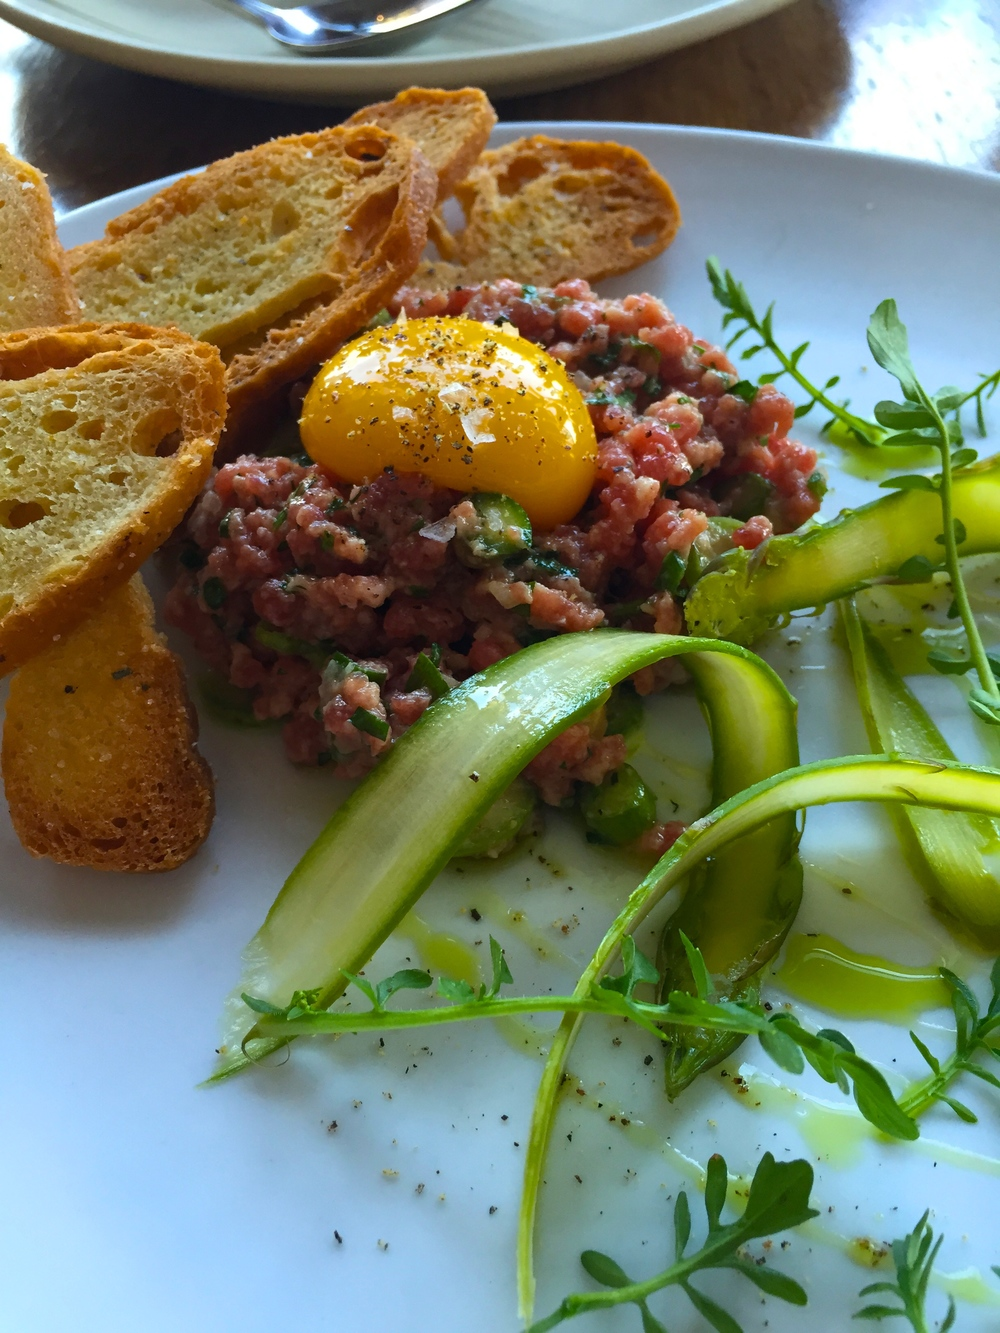 Prime Beef & Asparagus Tartare with white soy and yuzu dressing, egg yolk, garlic, chive, and jaime farms watercress.